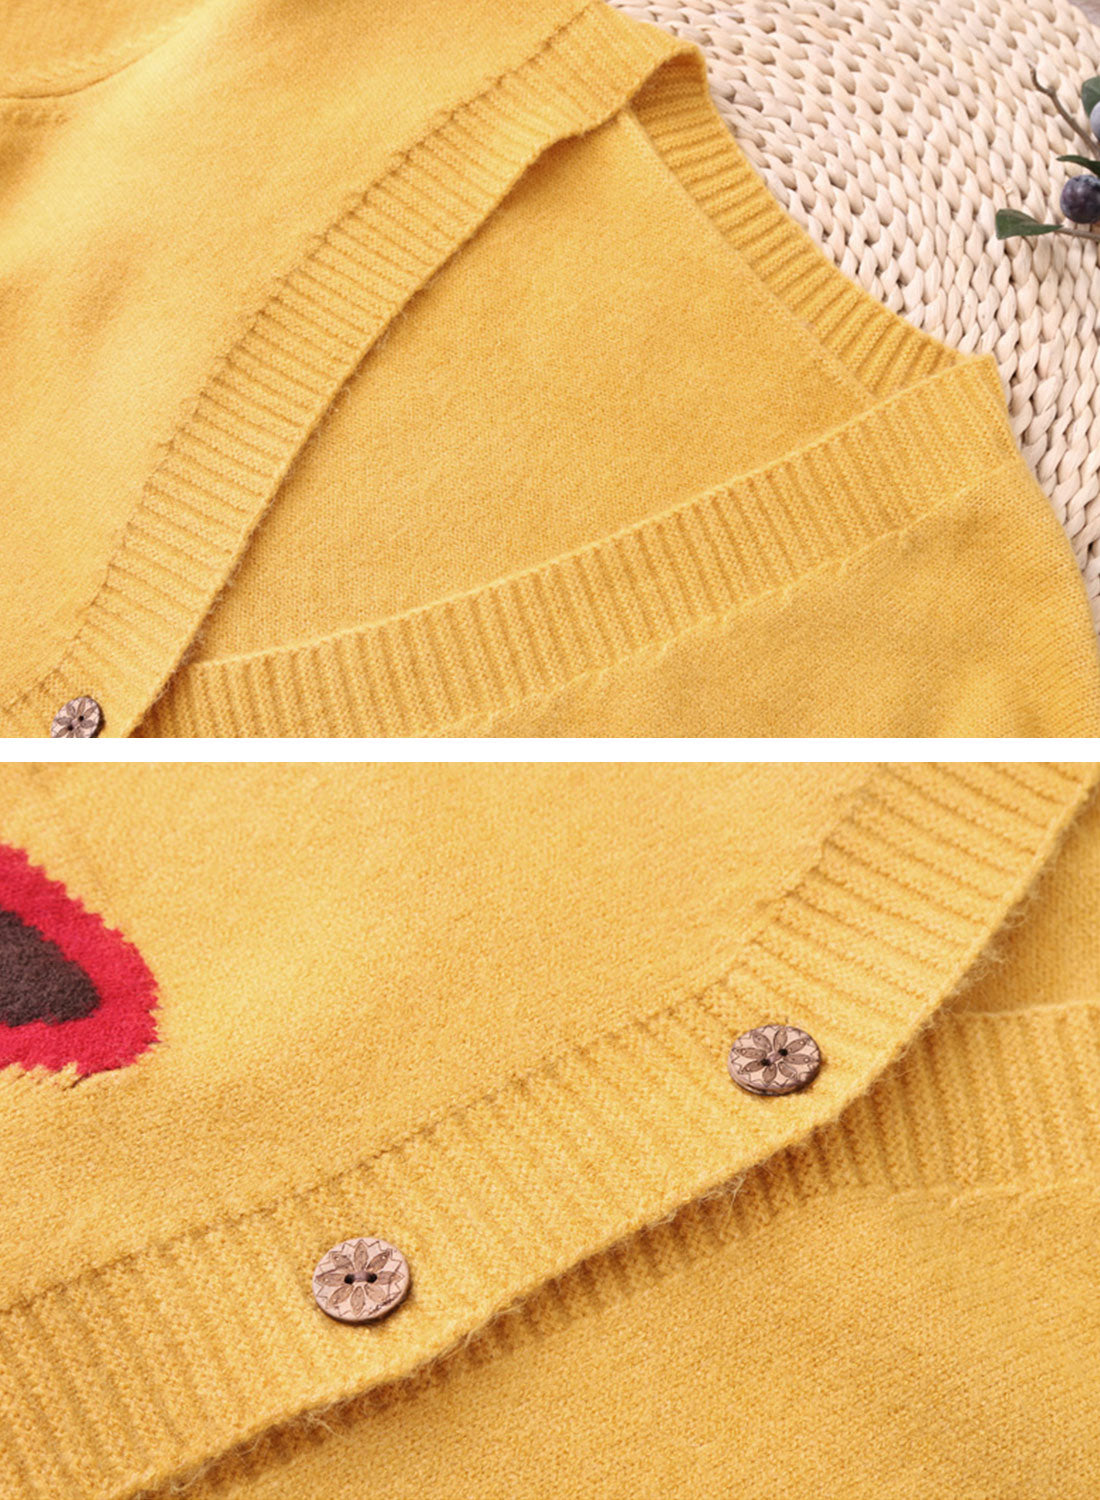 Fozy Little Thing Cardigan Sweater Details 1